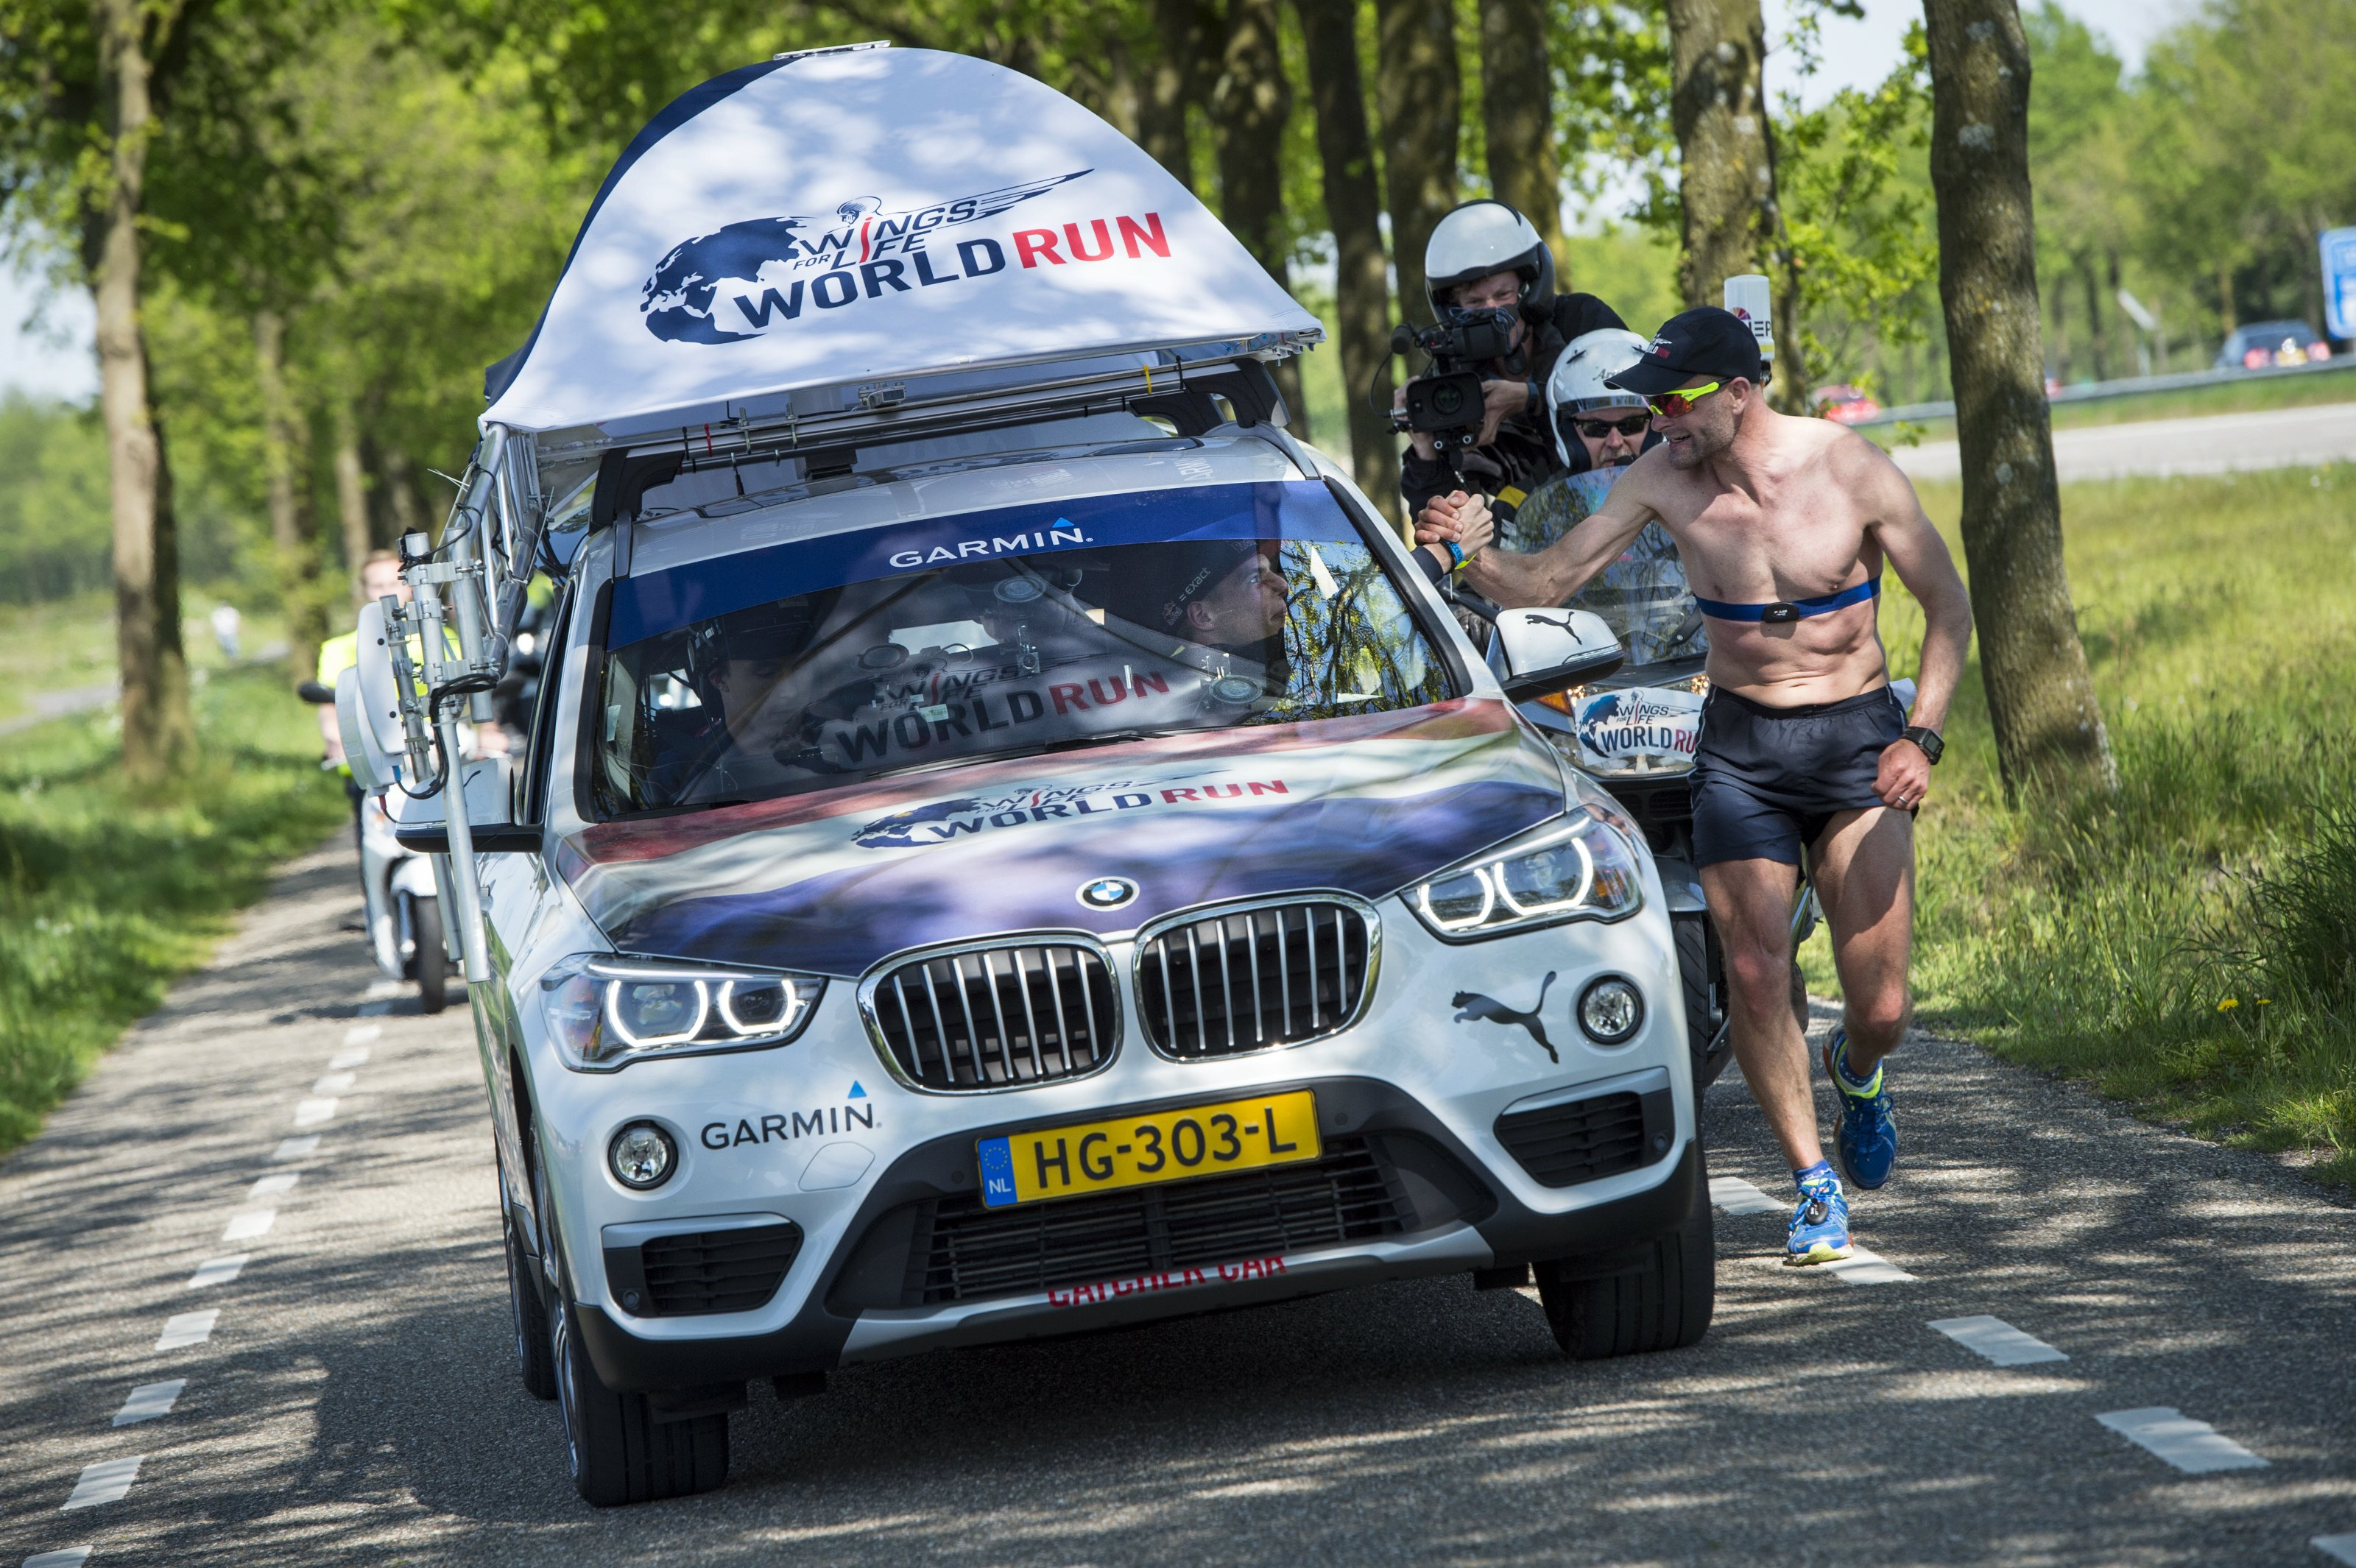 De Wings for LIfe World Run 2016.